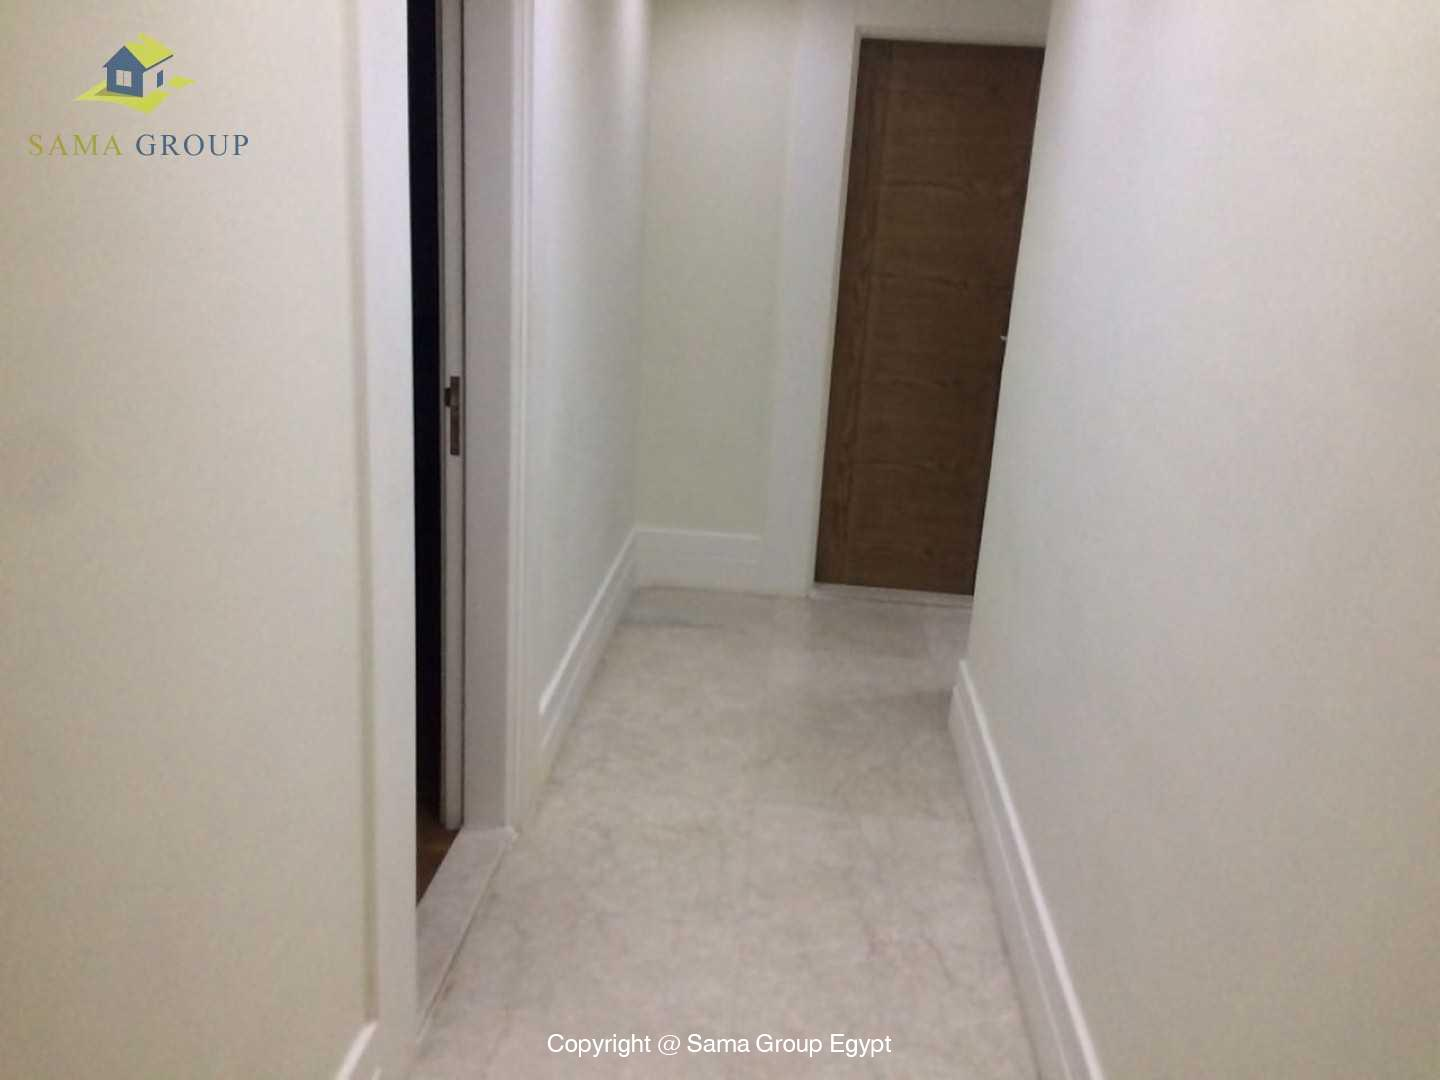 Apartment With Pool For Rent In Maadi Sarayat,Modern Furnished,Apartment NO #6